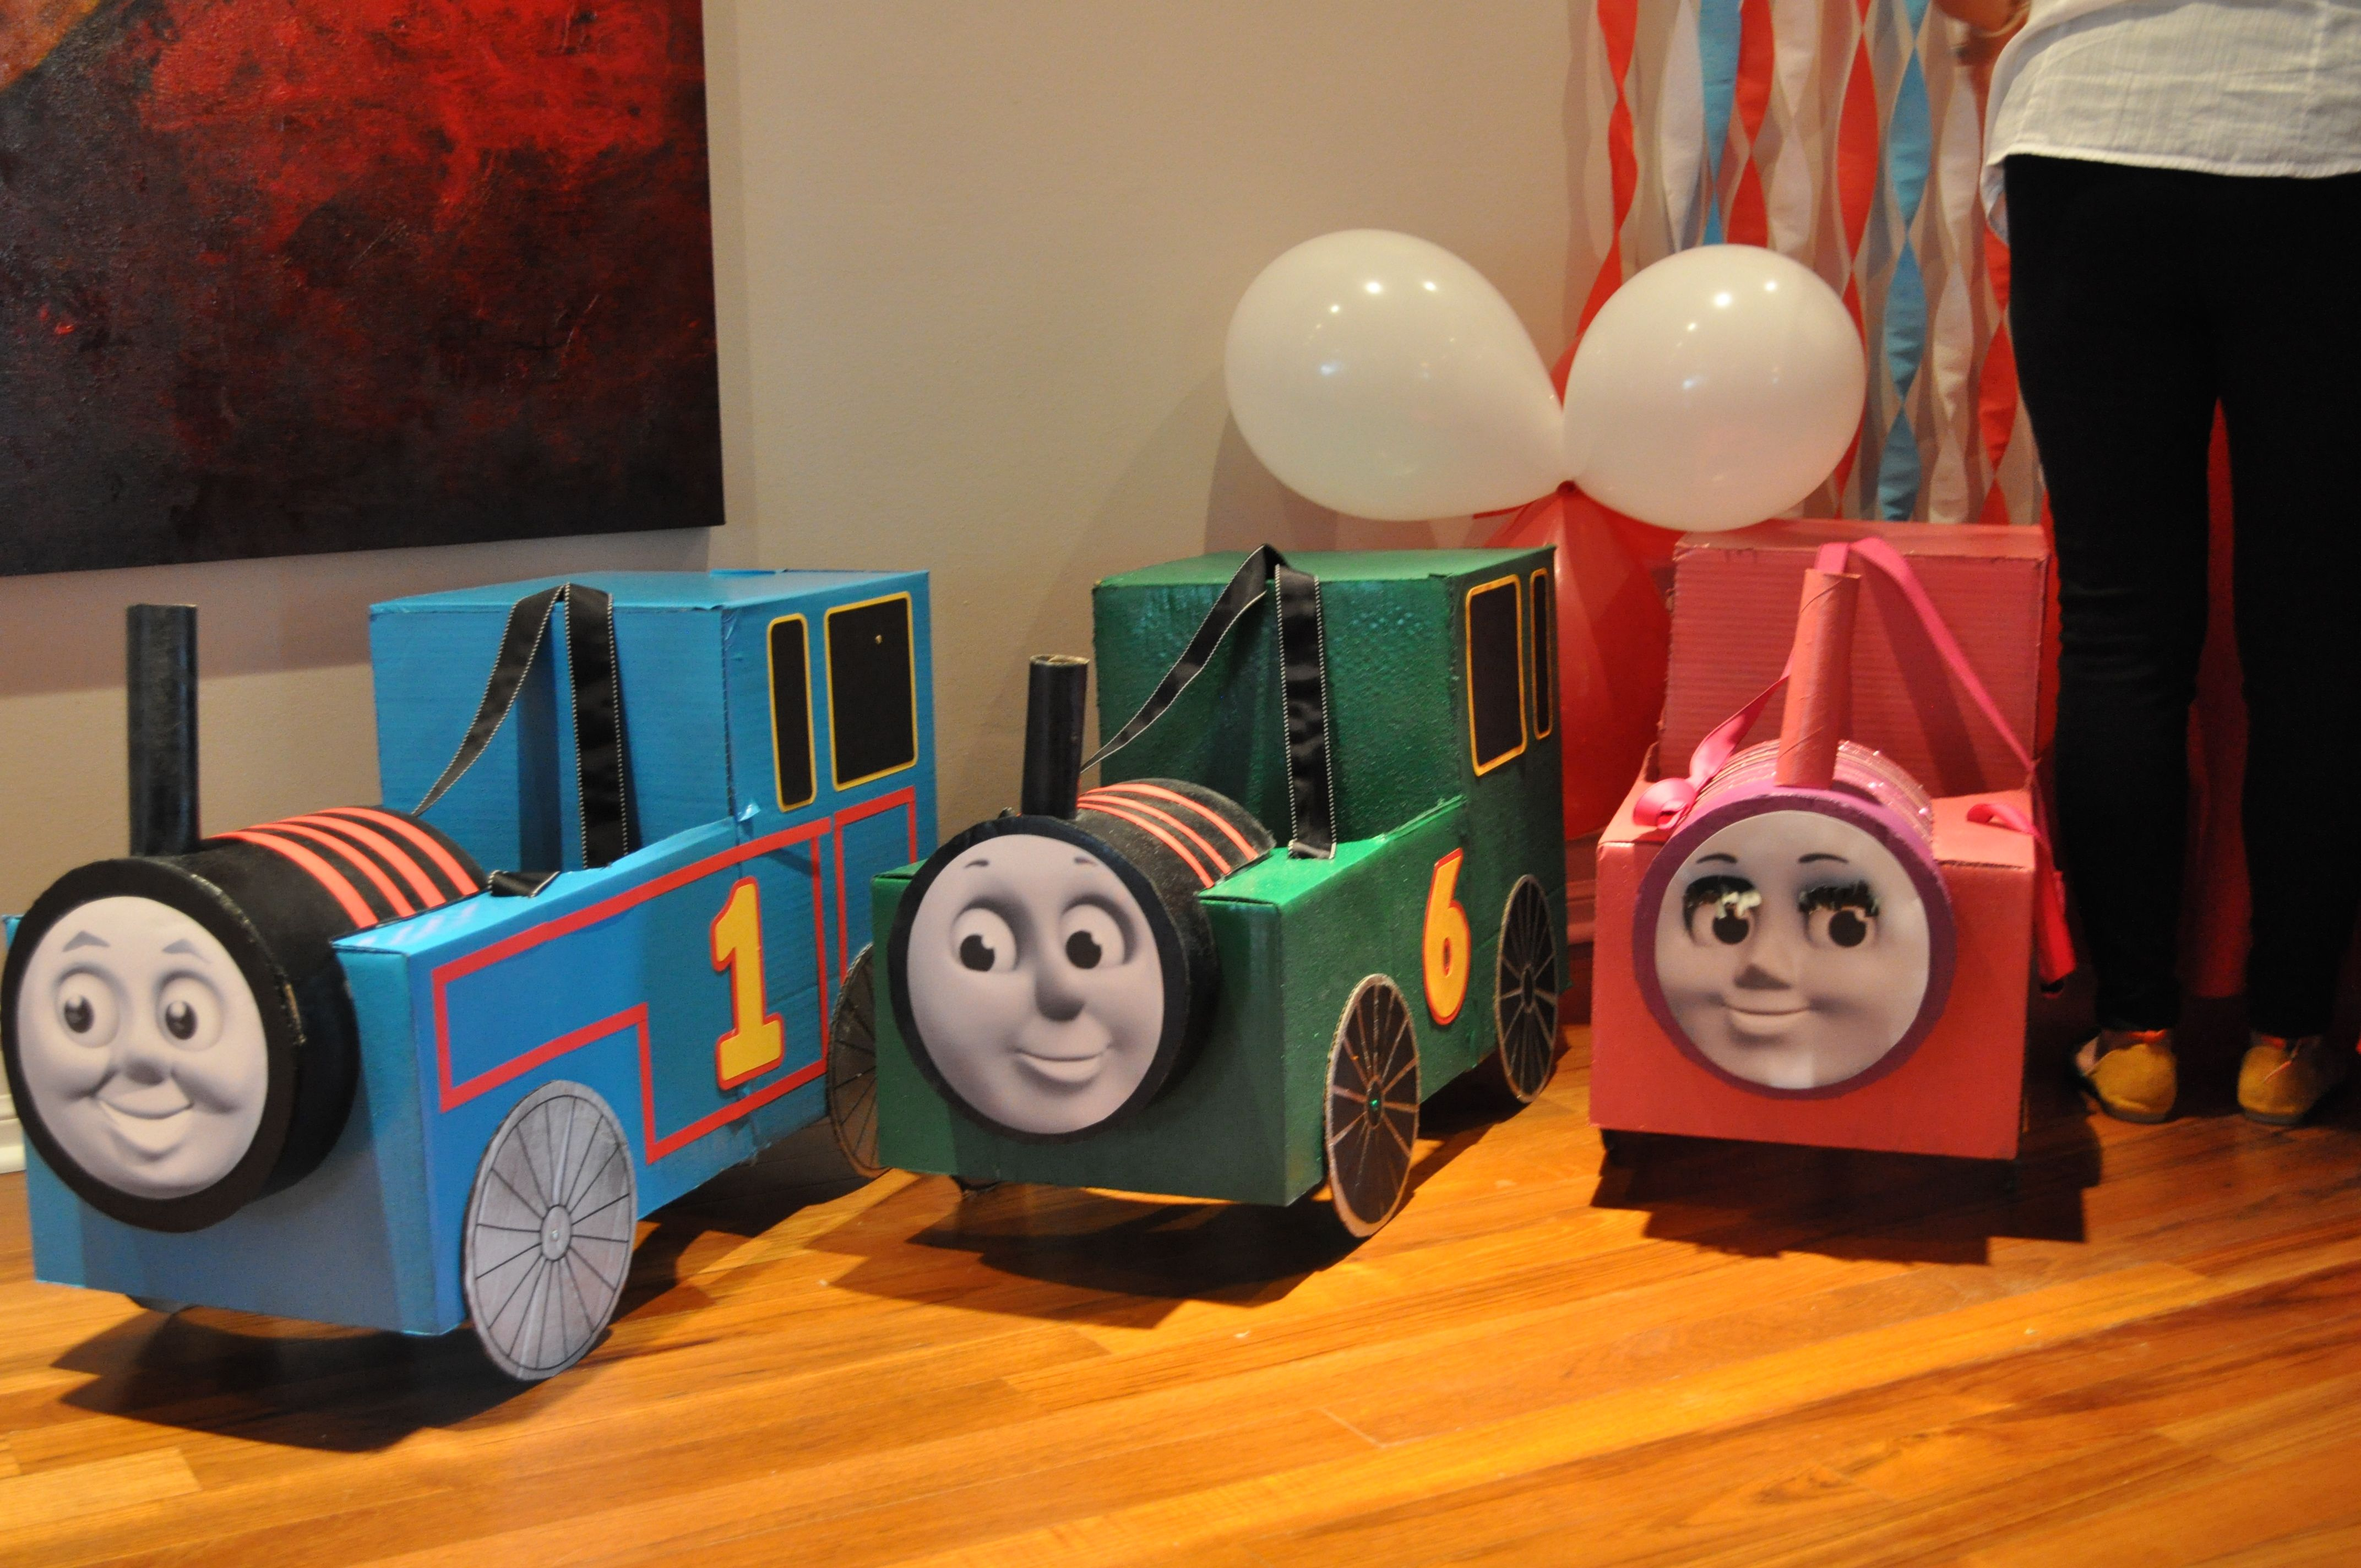 how to make thomas the train out of cardboard boxes